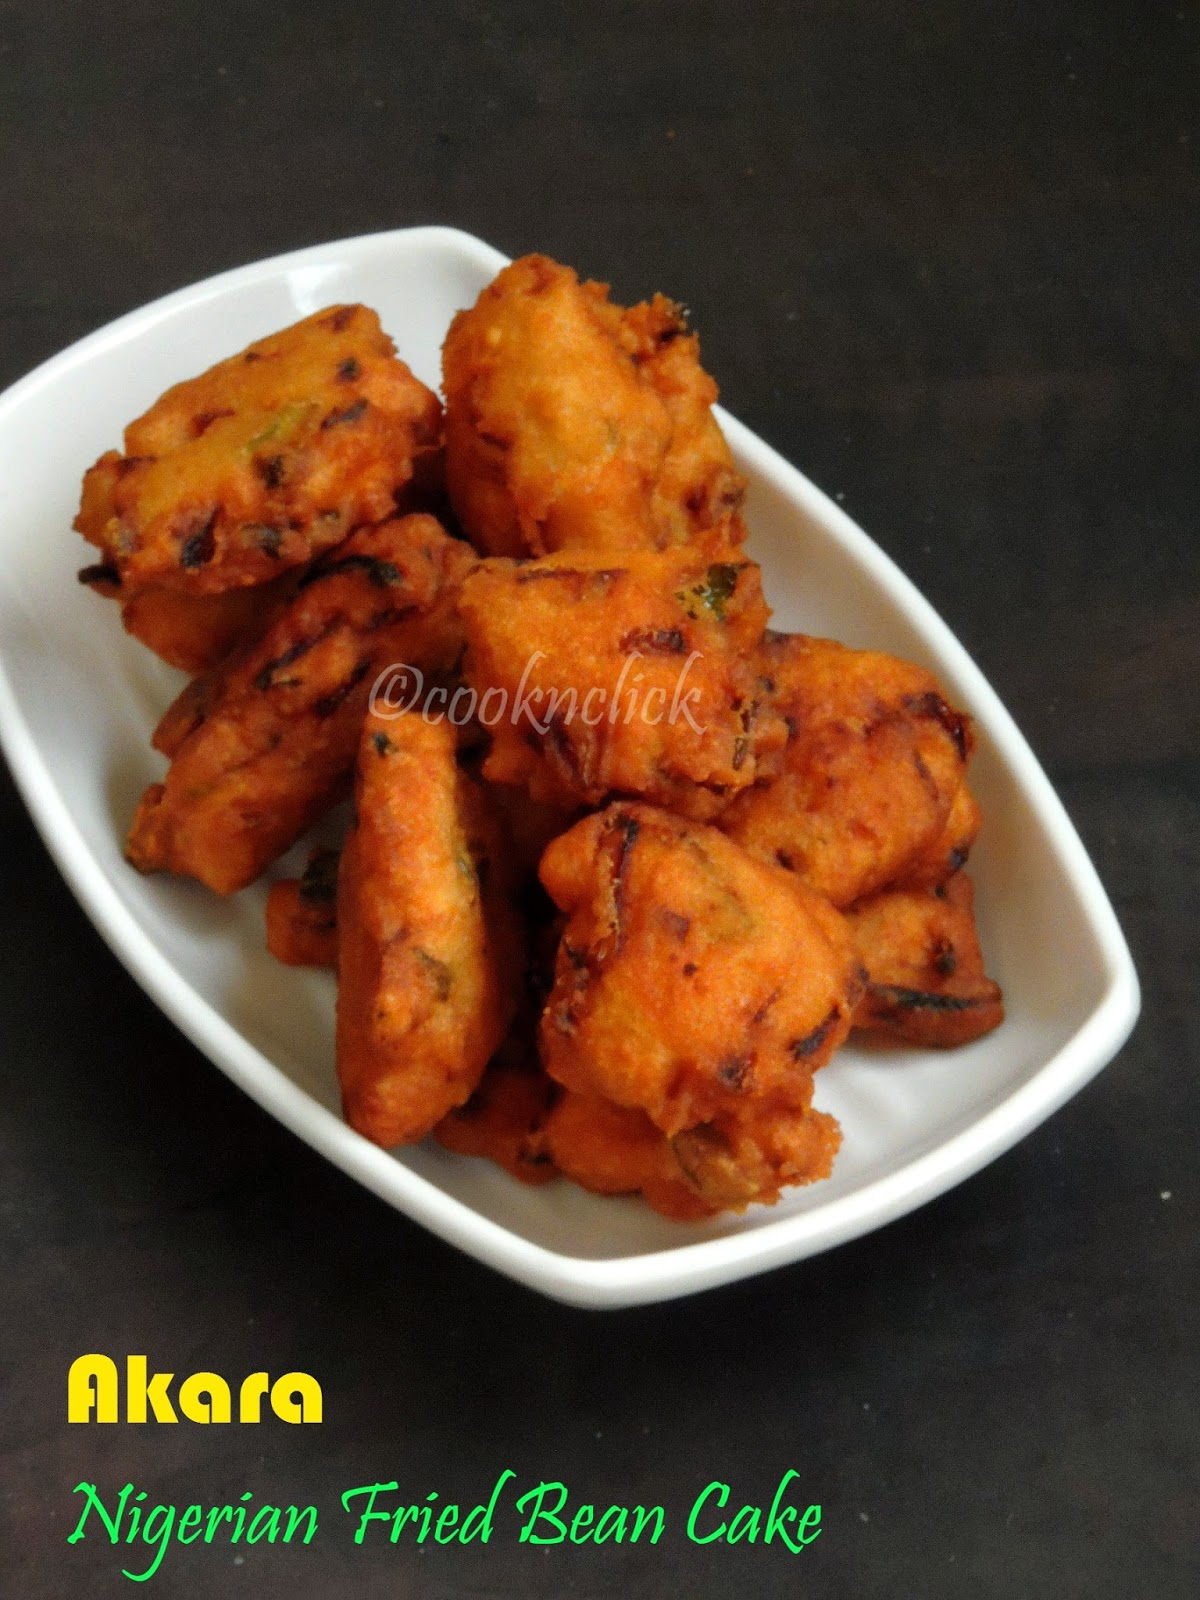 Akara, Nigerian fried bean cake